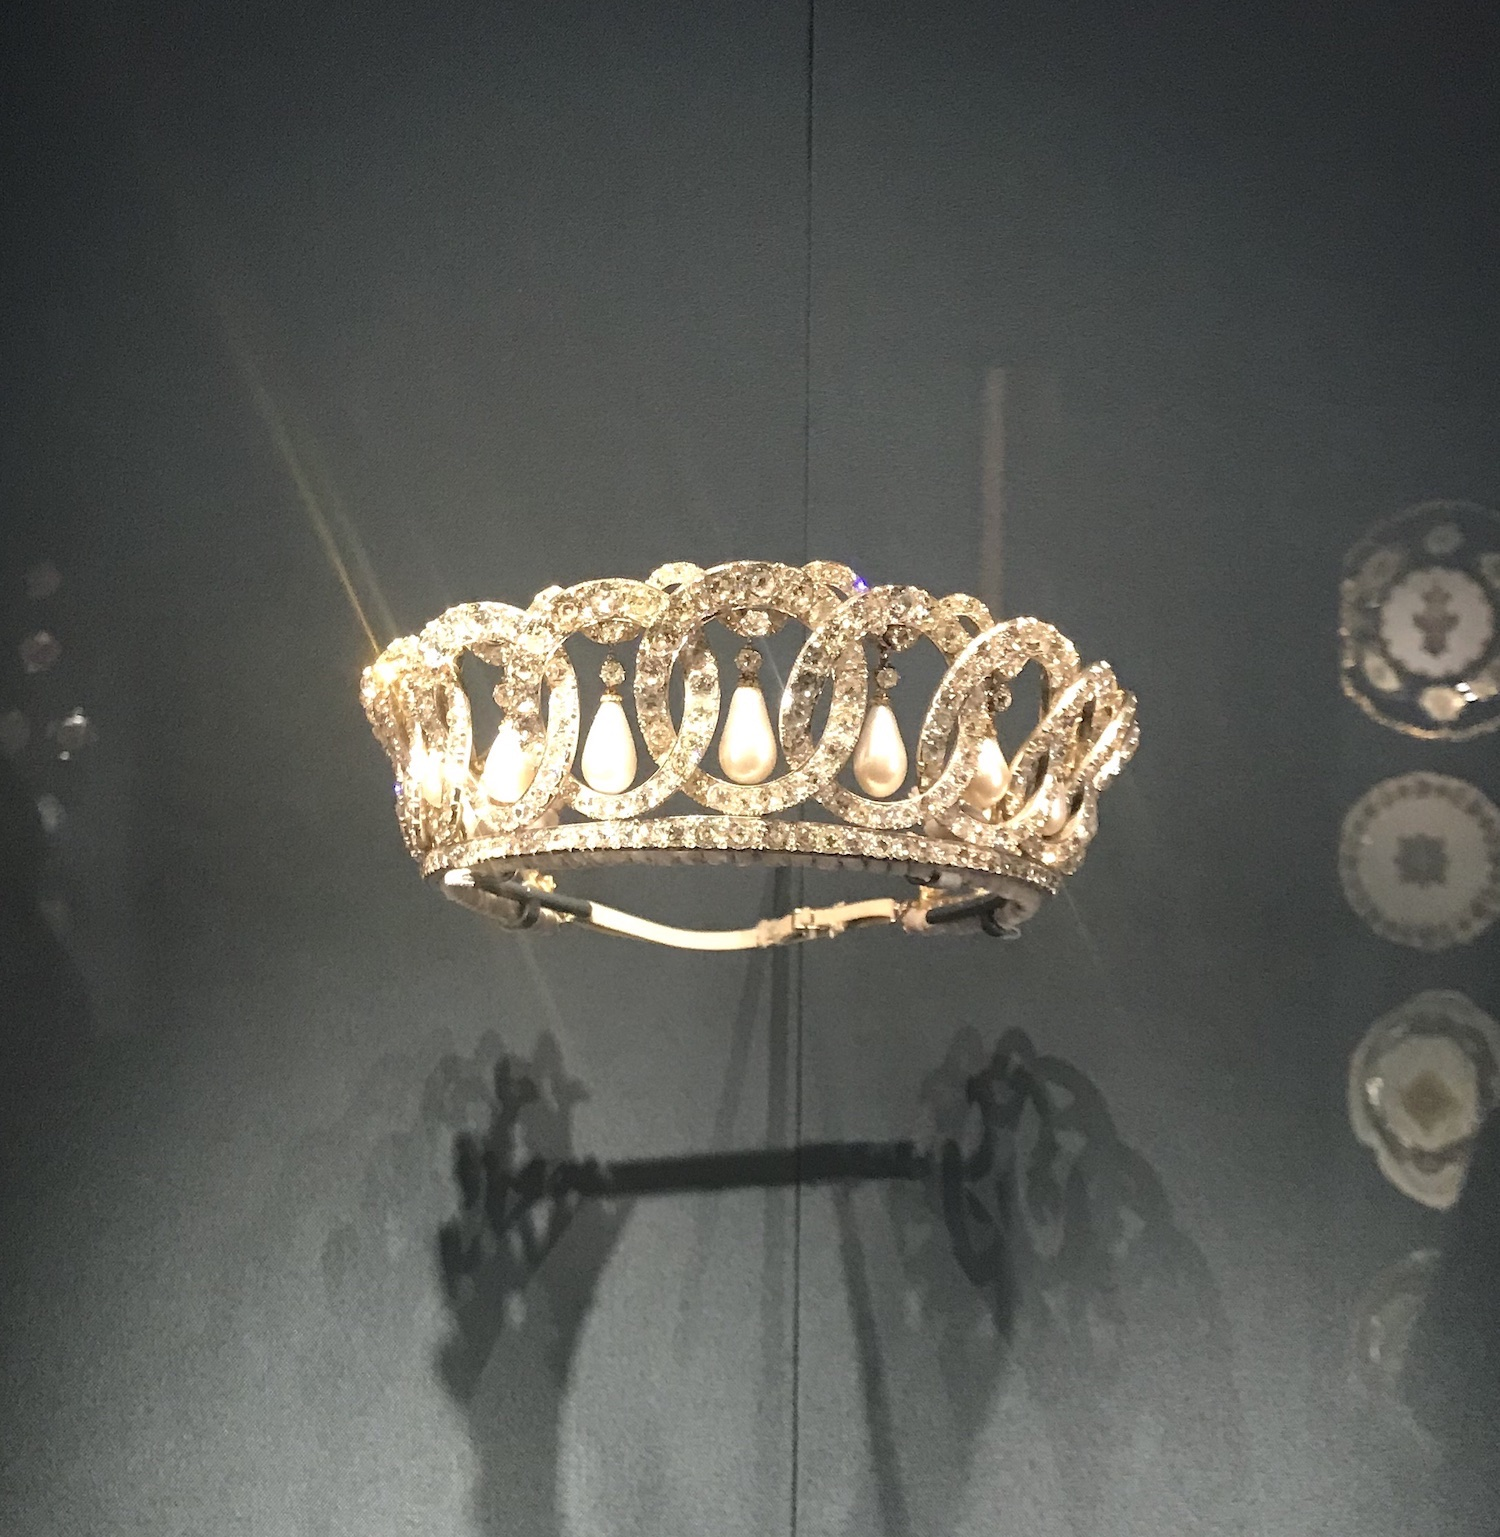 The diamond and pearl tiara commissioned by the Grand Duchess Vladimir; it was bought by Queen Mary and left to her granddaughter, Queen Elizabeth II. It is currently on show at the Queen's Gallery in Buckingham Palace as part of the Russia, Royalty and the Romanovs exhibition.